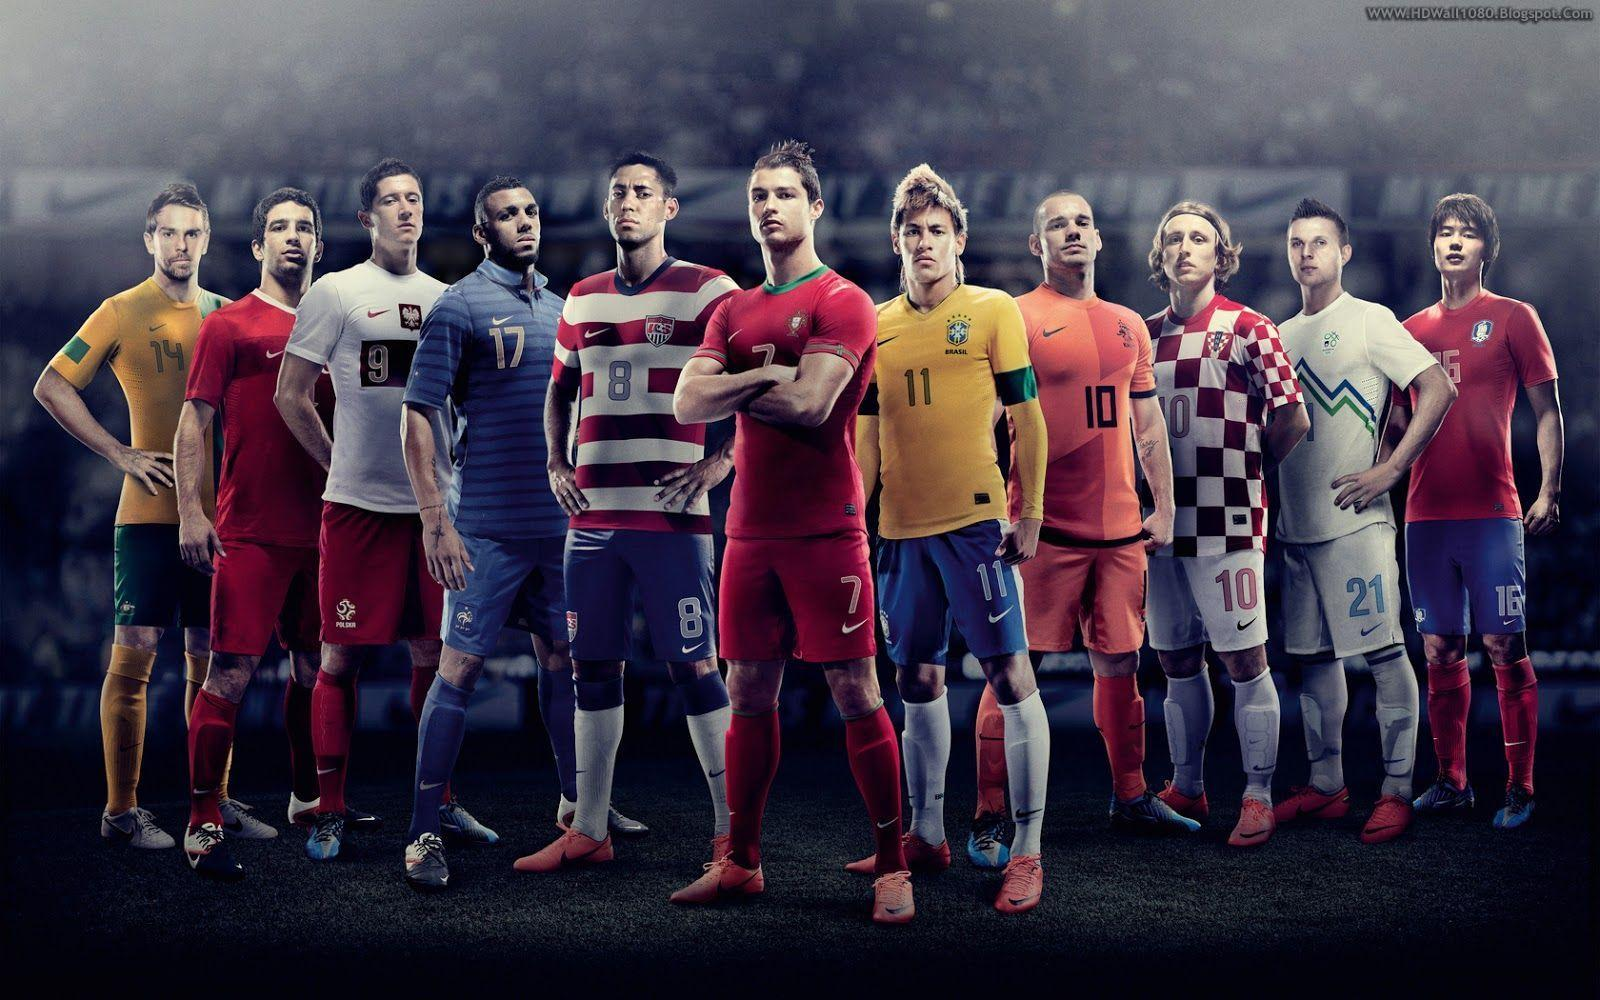 Collection of Football Players on HDWallpapers